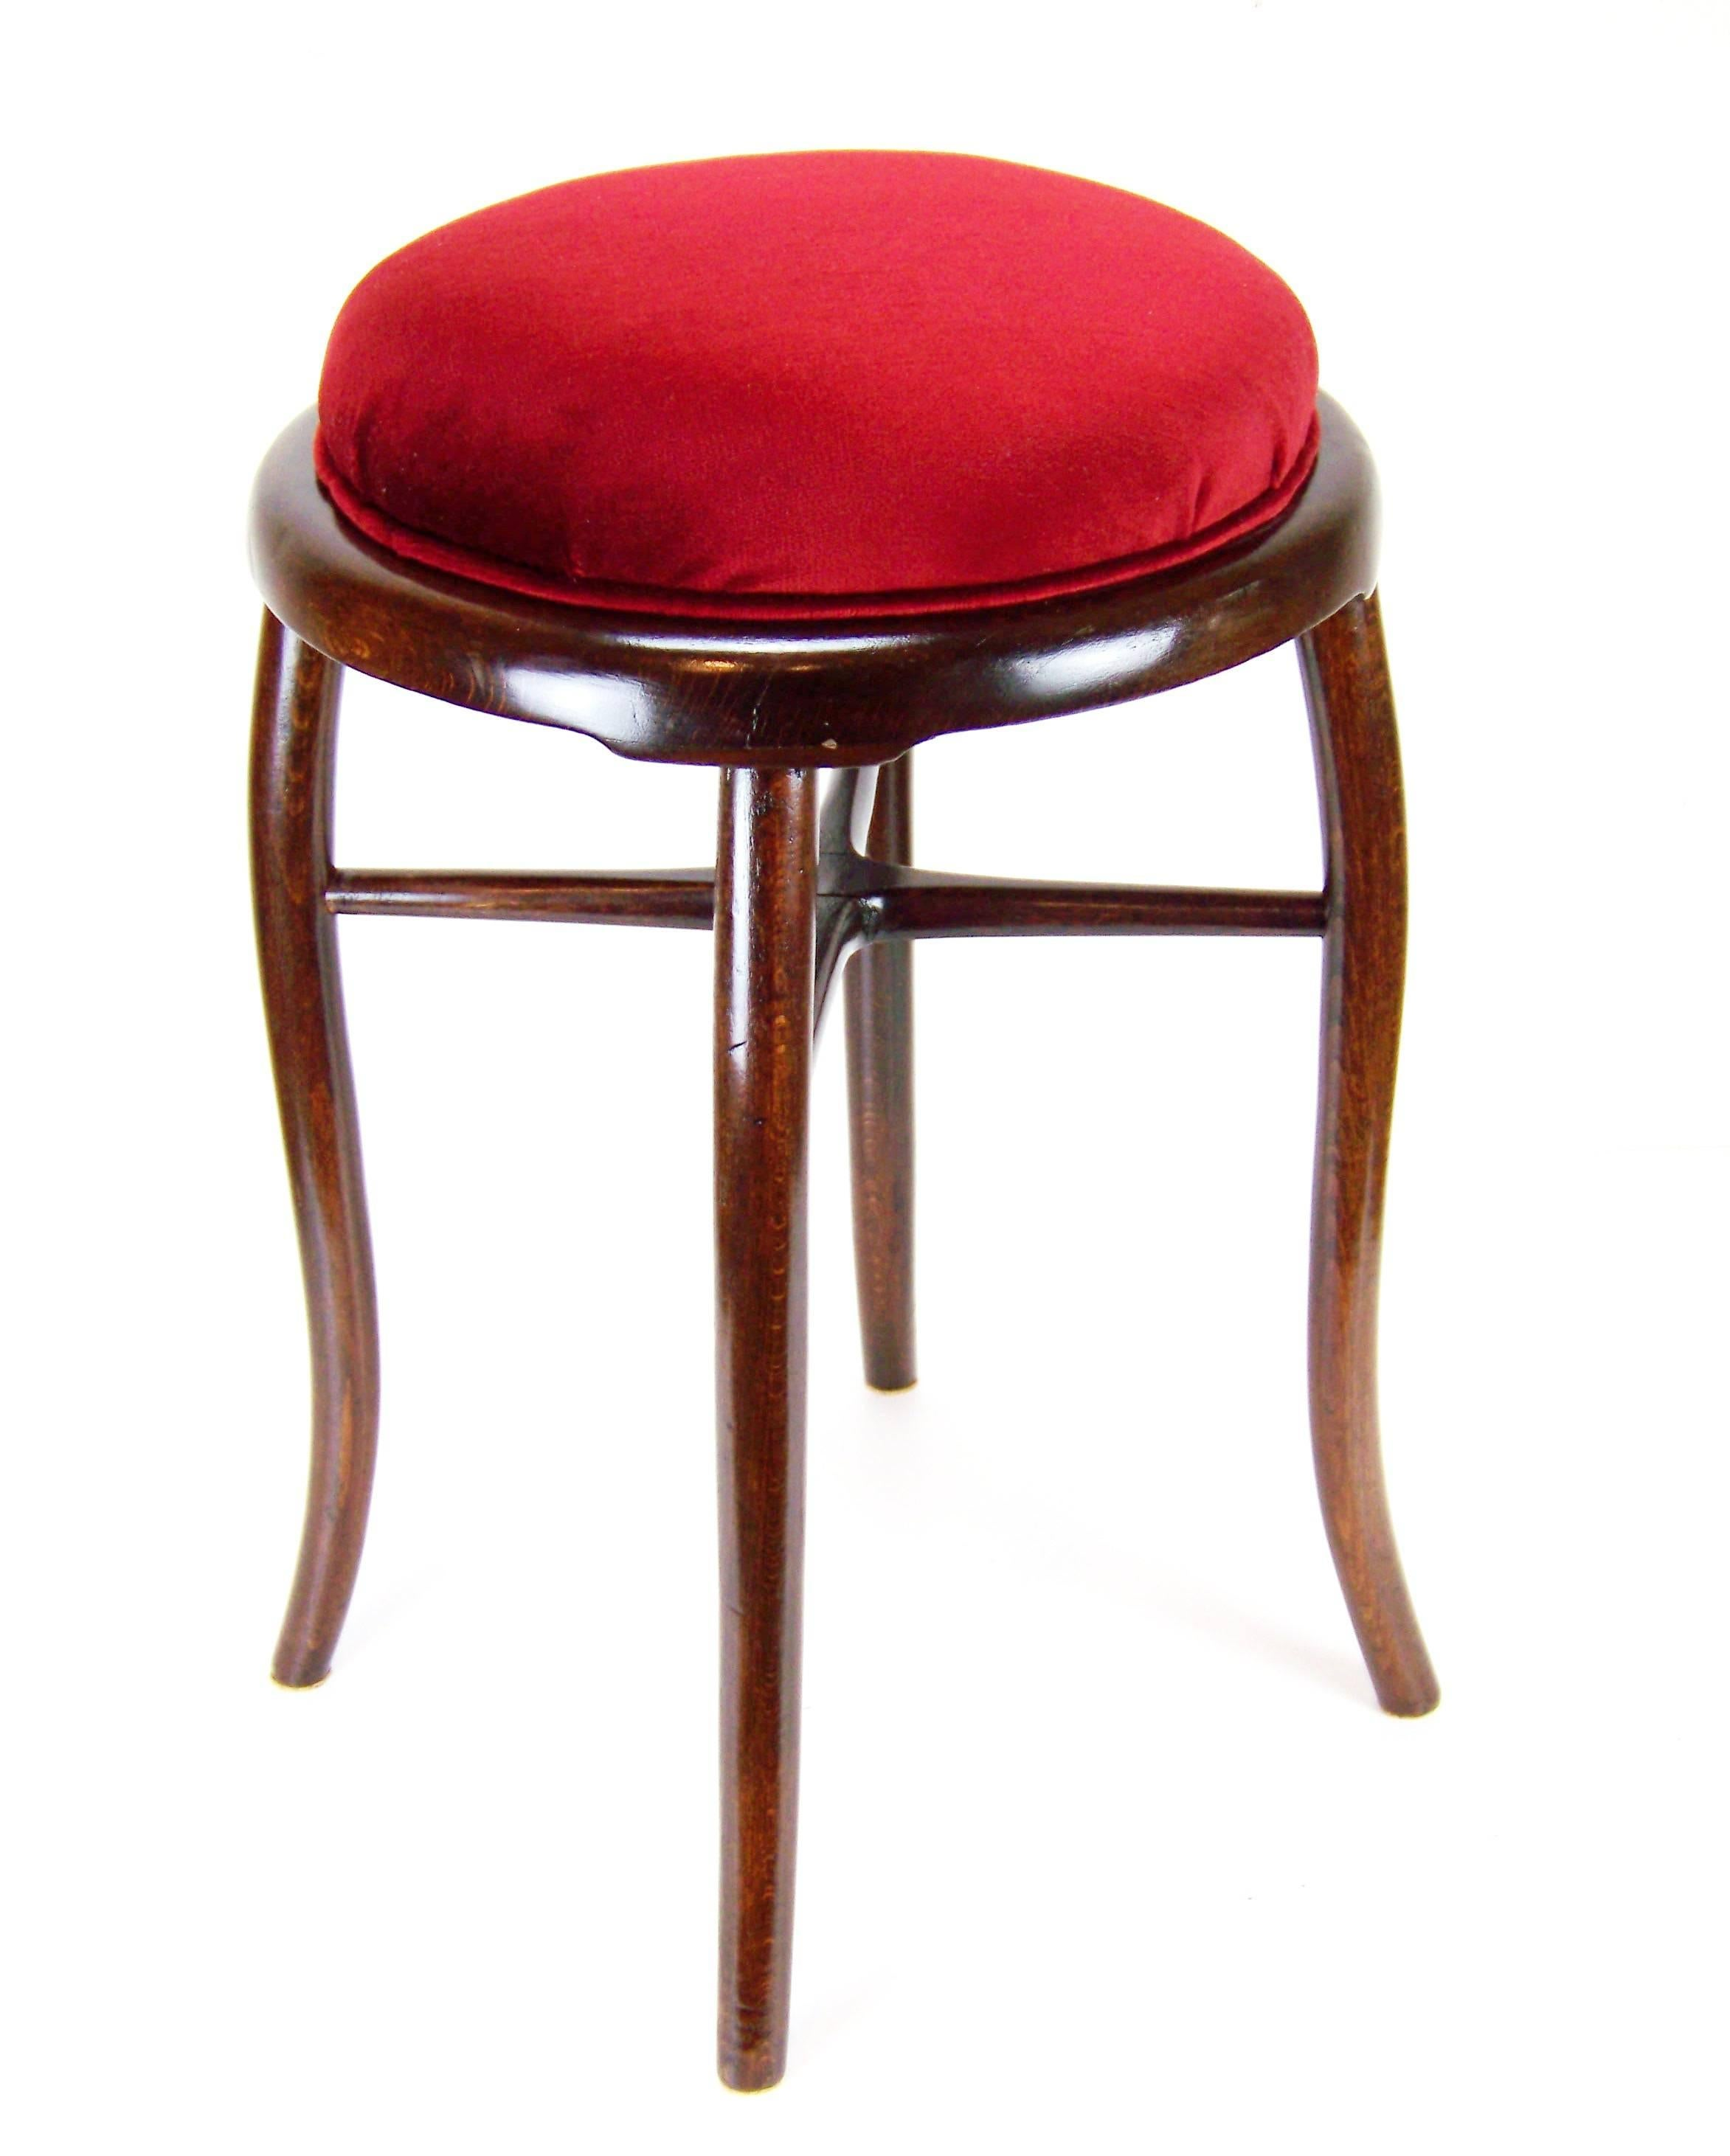 Benches & Stools Expressive Vintage Retro Foot Stool Ottoman Mid Century Crease-Resistance